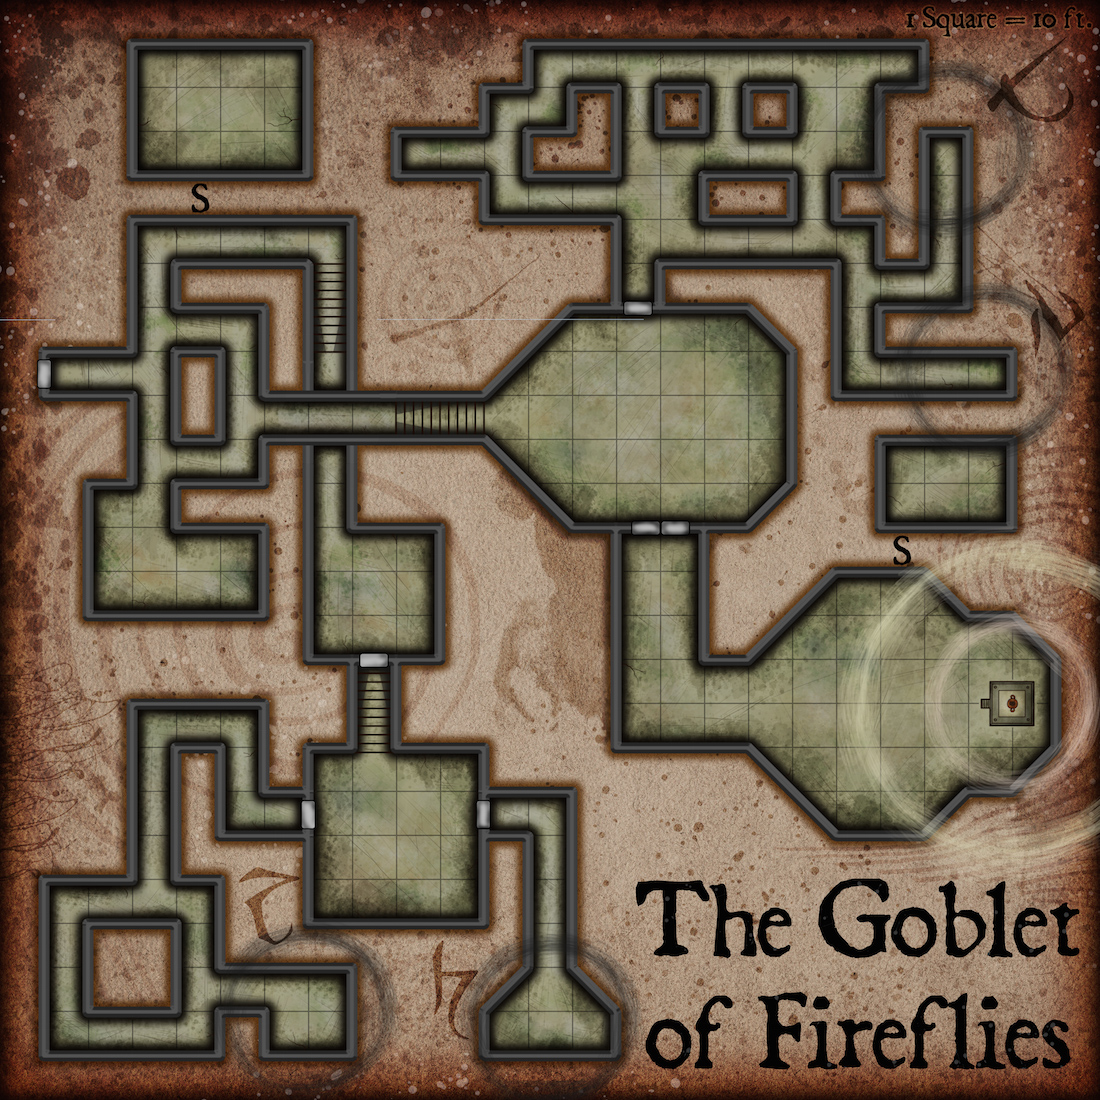 130 The Goblet of Fireflies